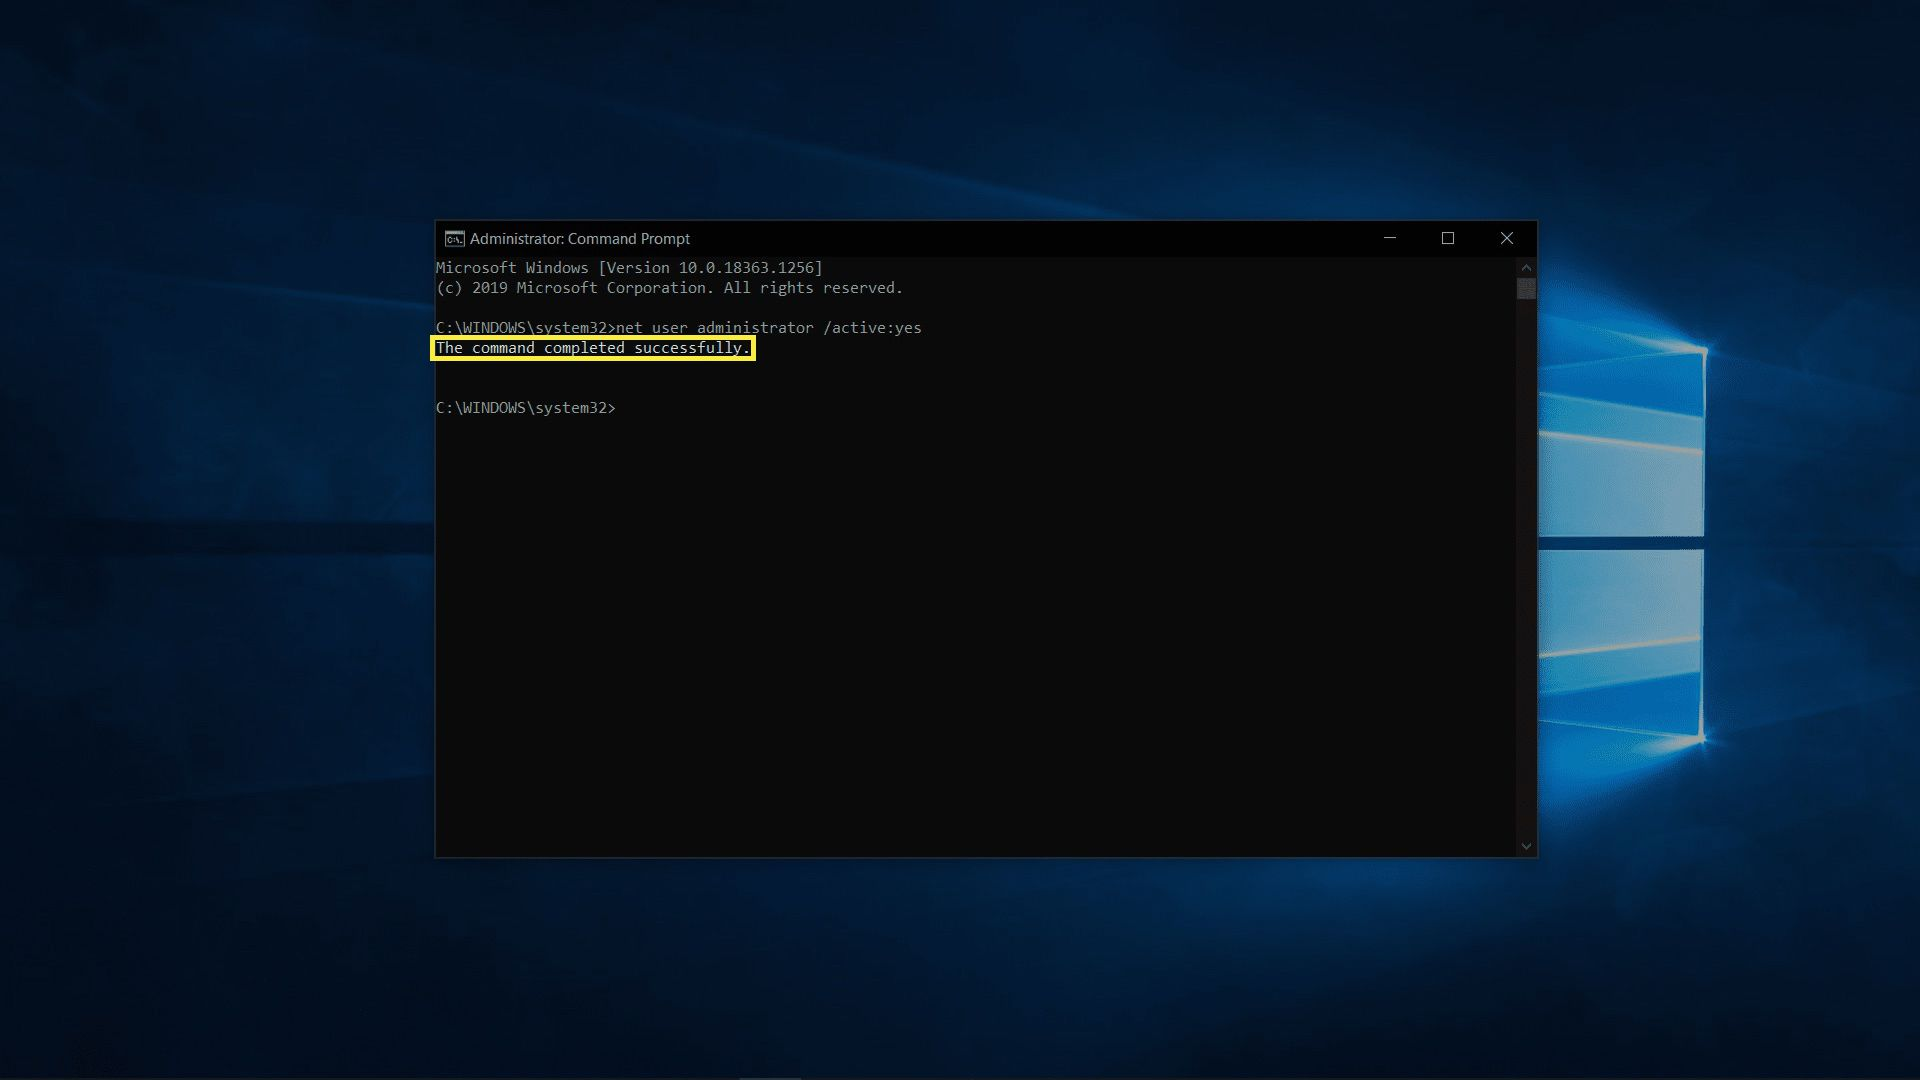 Enabling the admin account on Windows 10.